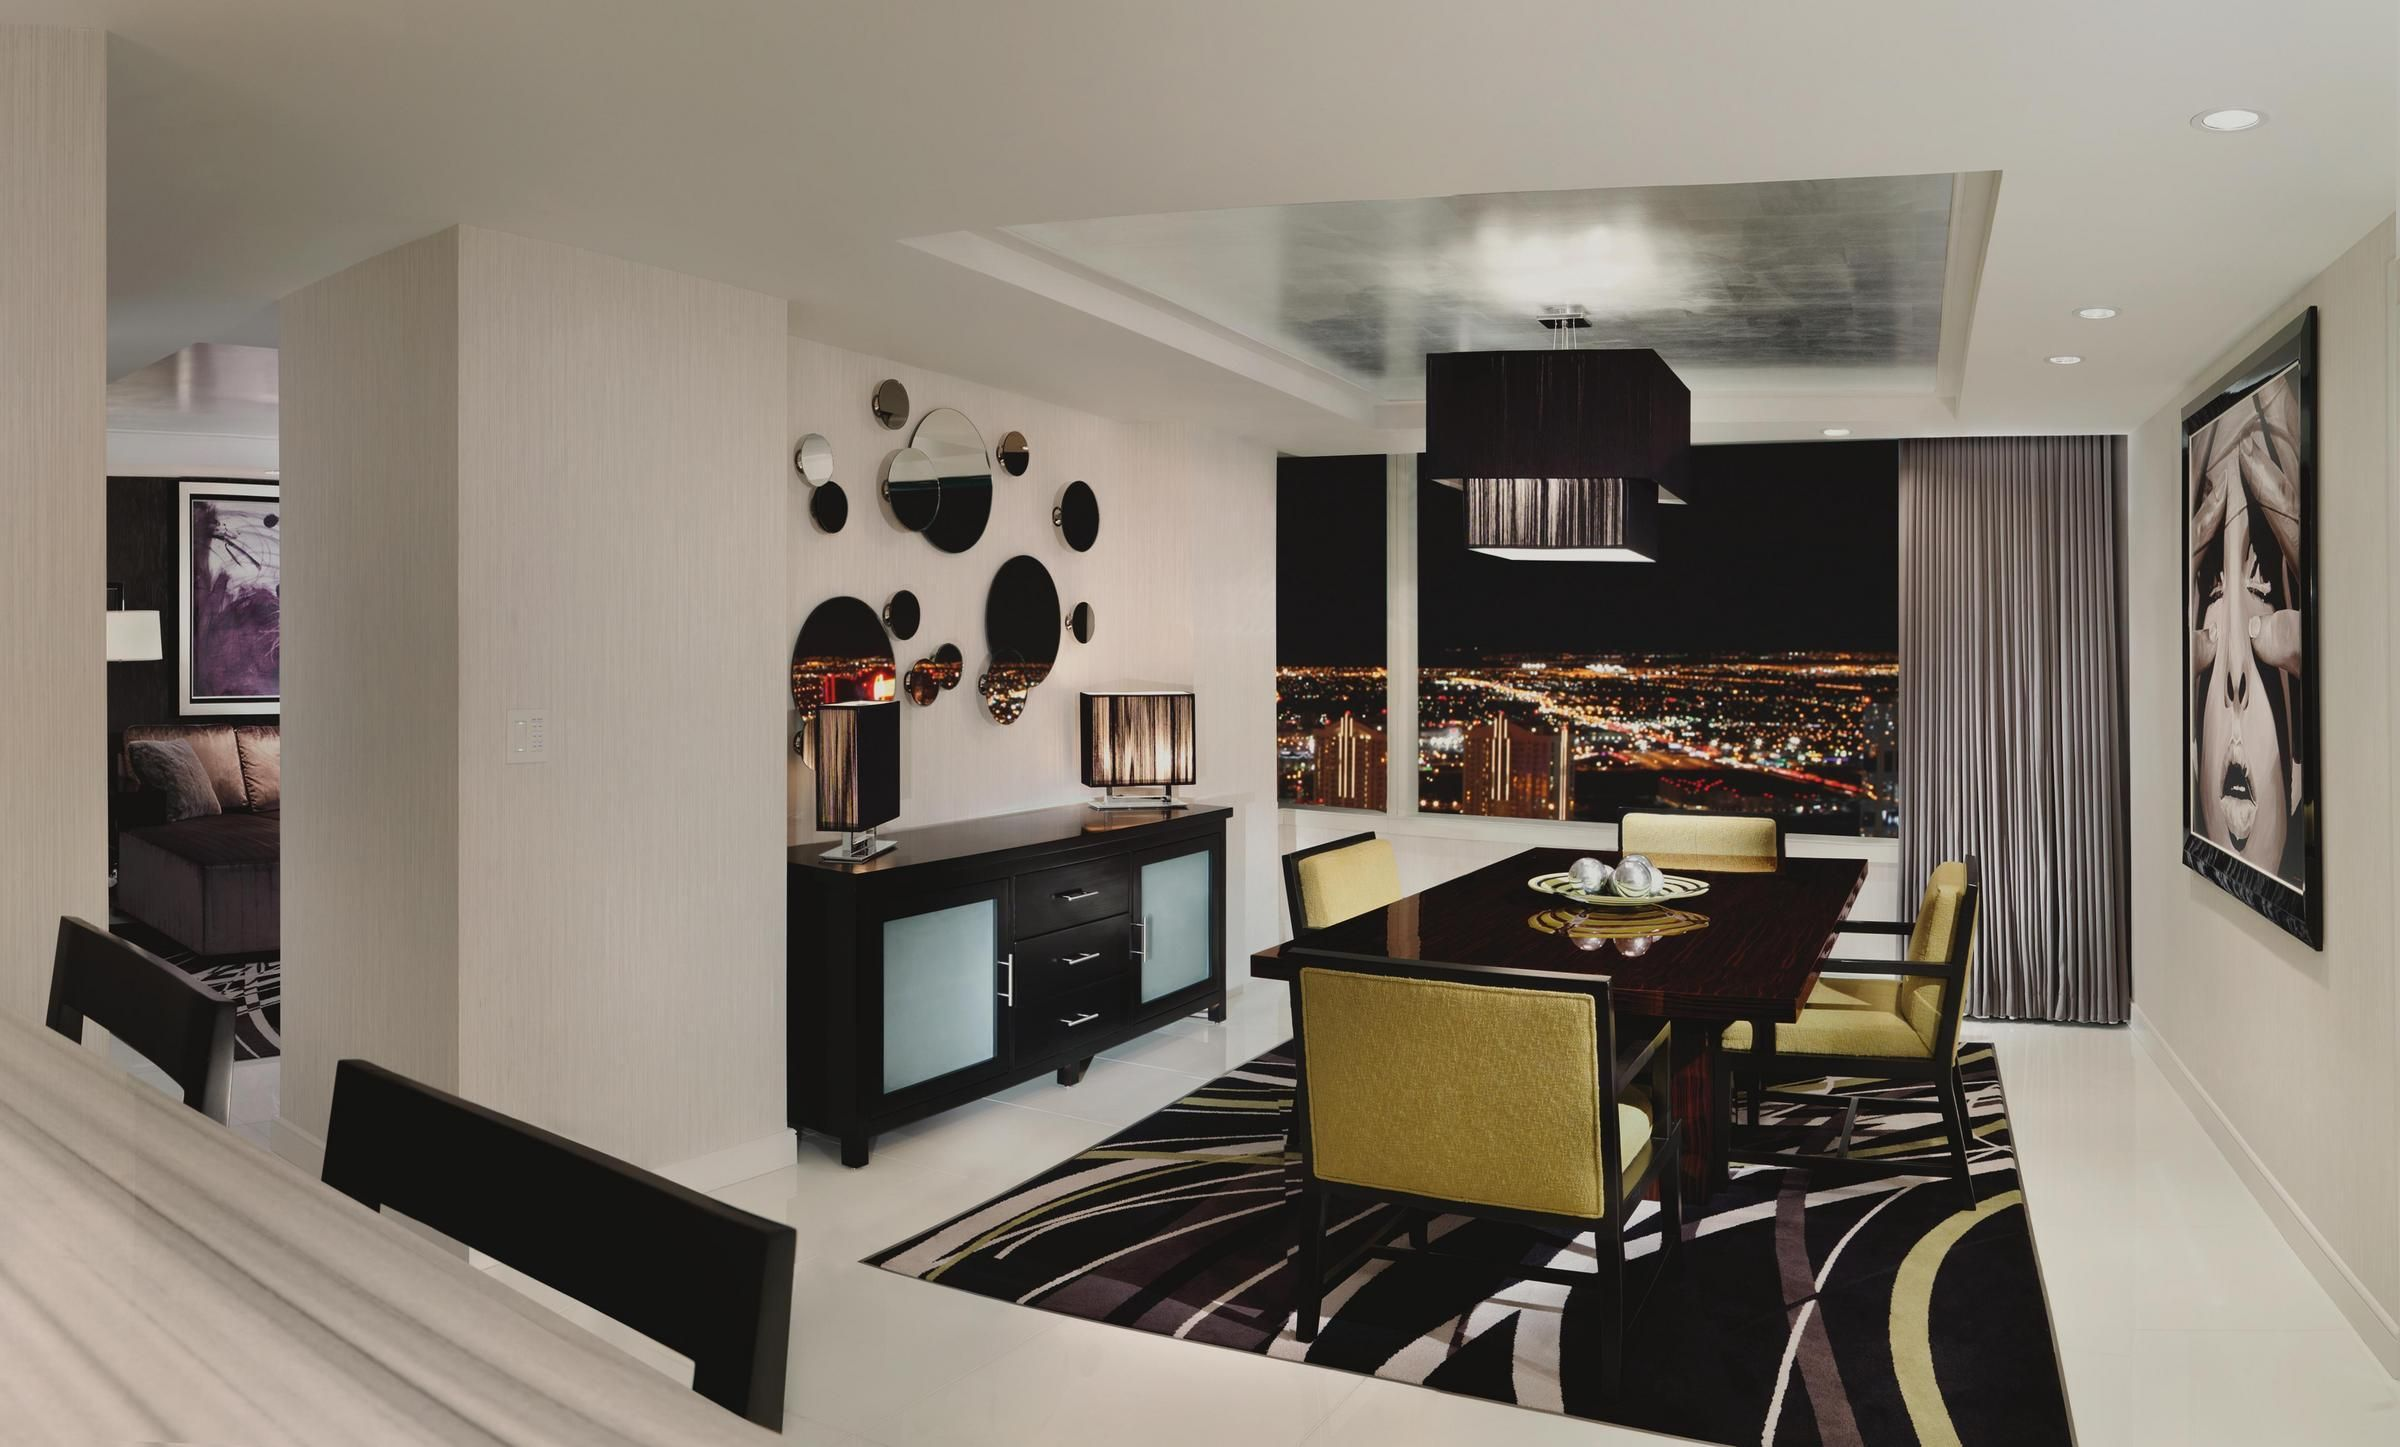 The ARIA Sky Suites' 1 Bedroom Penthouse is your home away